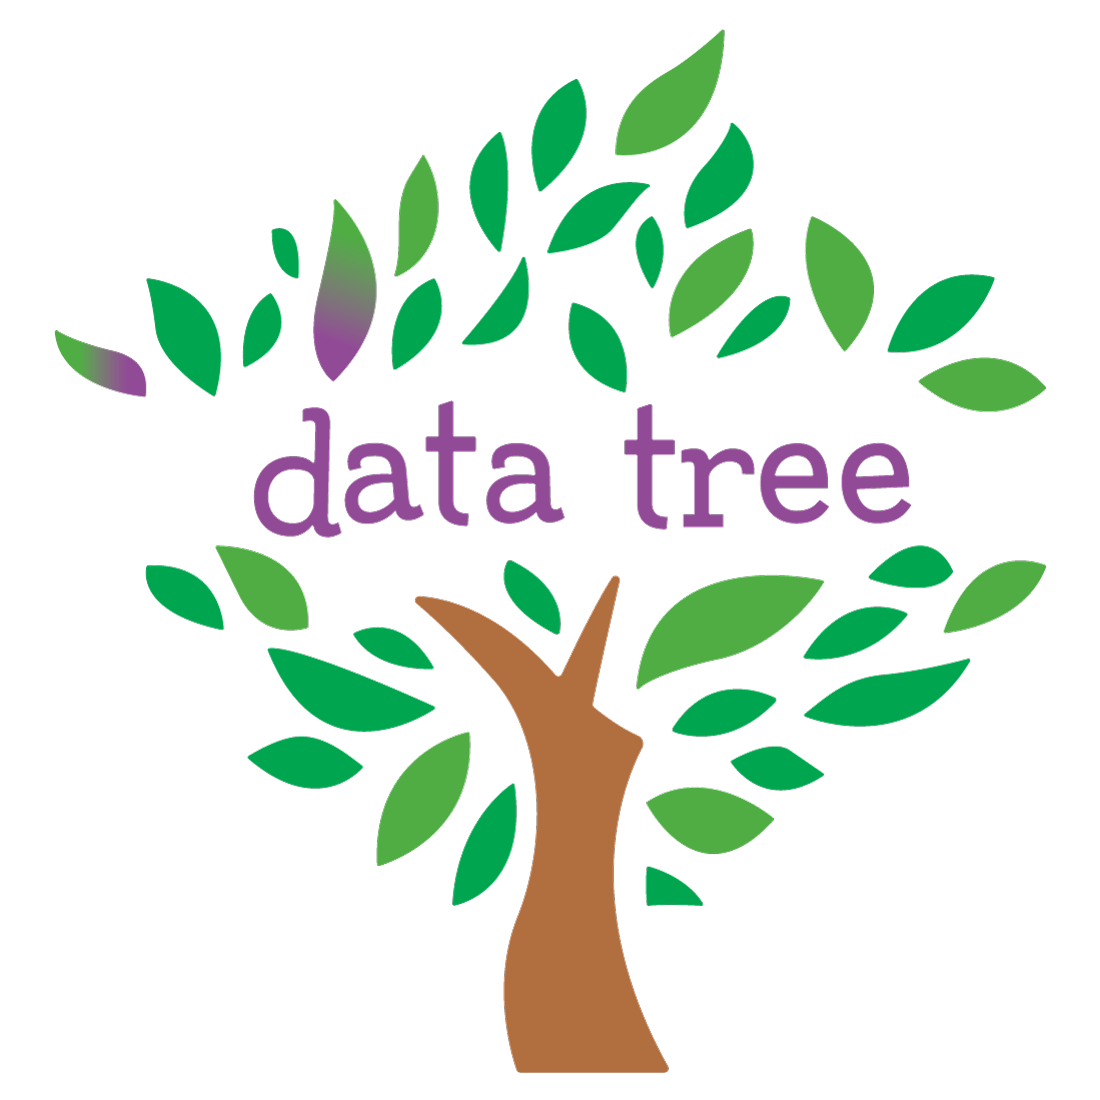 Datatree - Data Training Engaging End-users